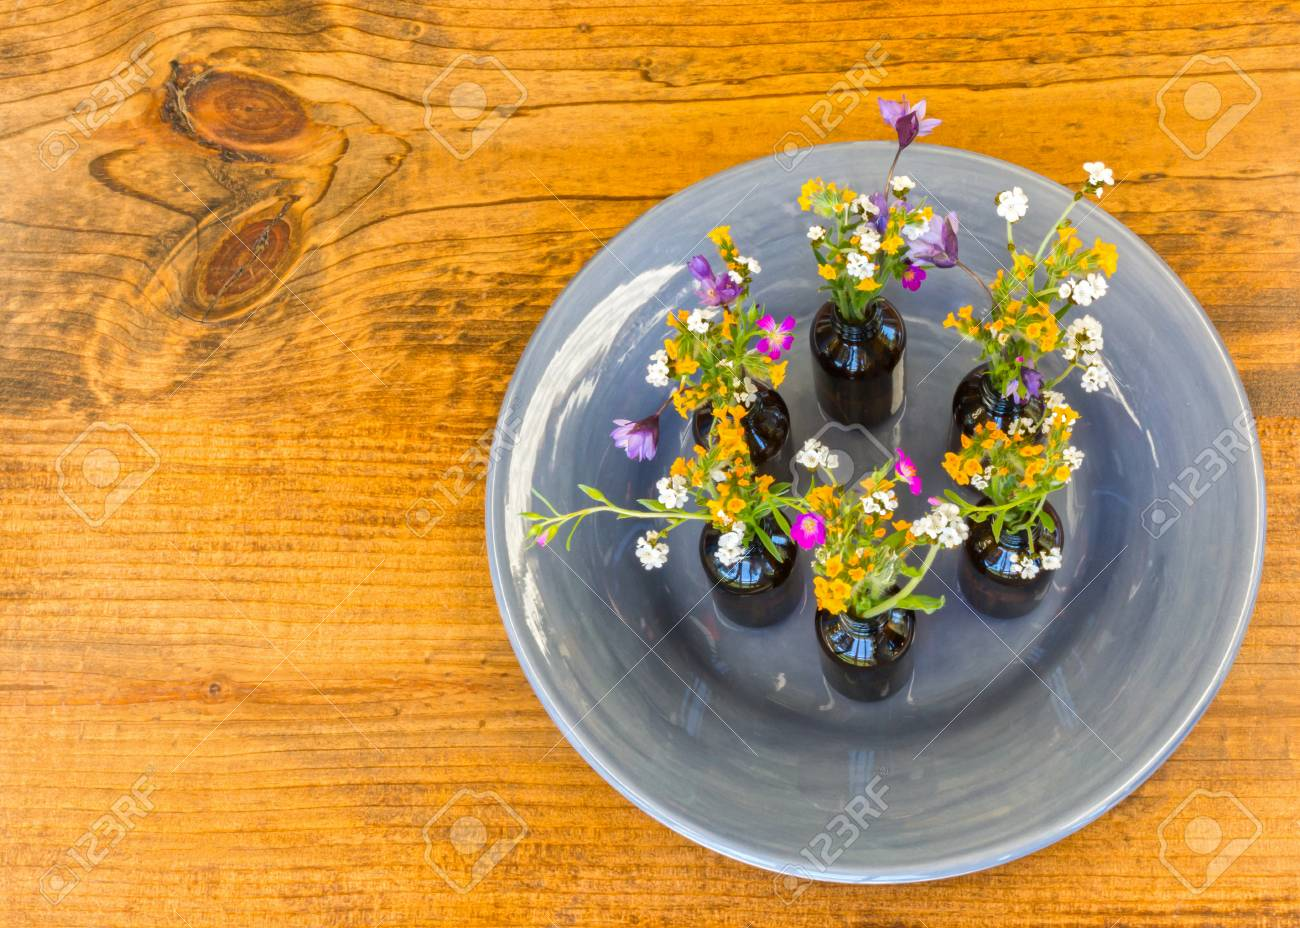 123RF.com & Gray Plate With Small Vases With Flowers Sitting on Wooden Table